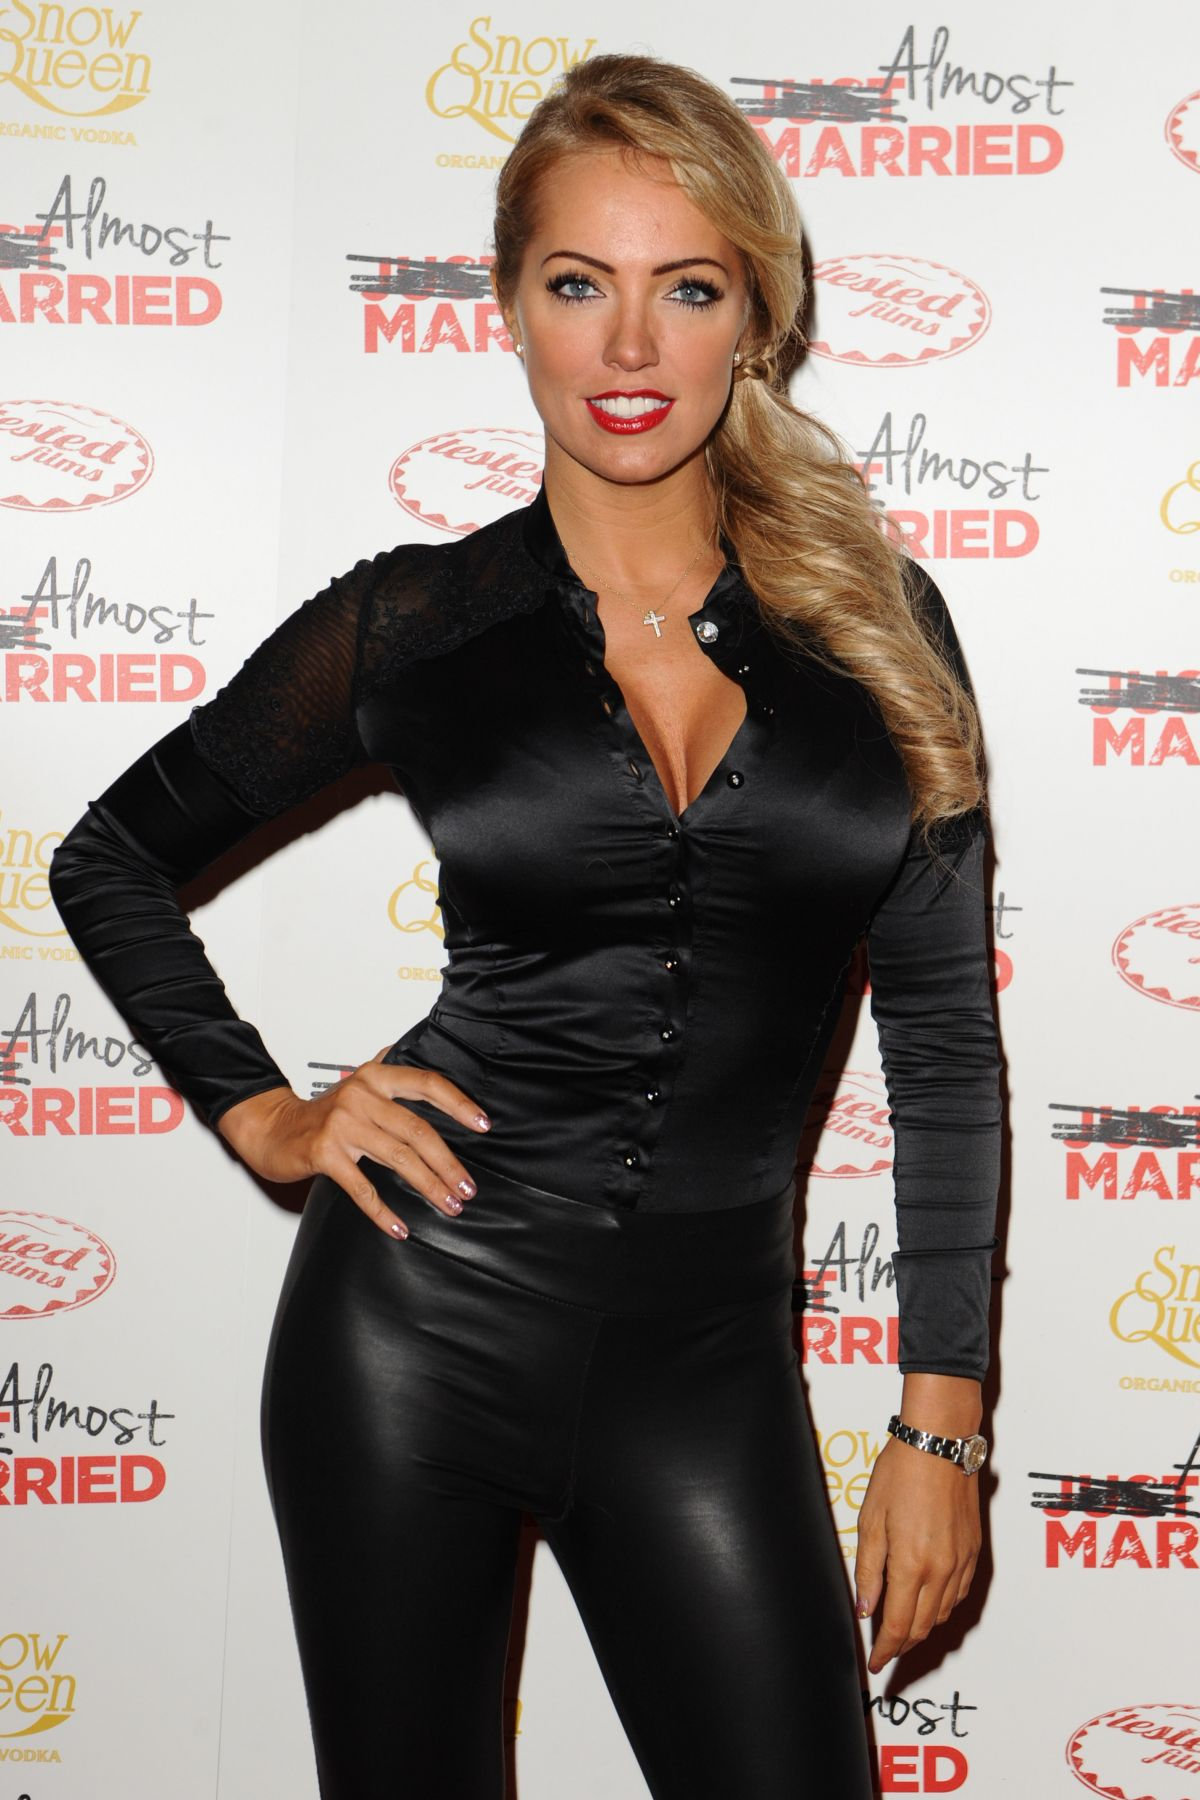 Aisleyne Horgan-Wallace Showing Of Almost Married In London